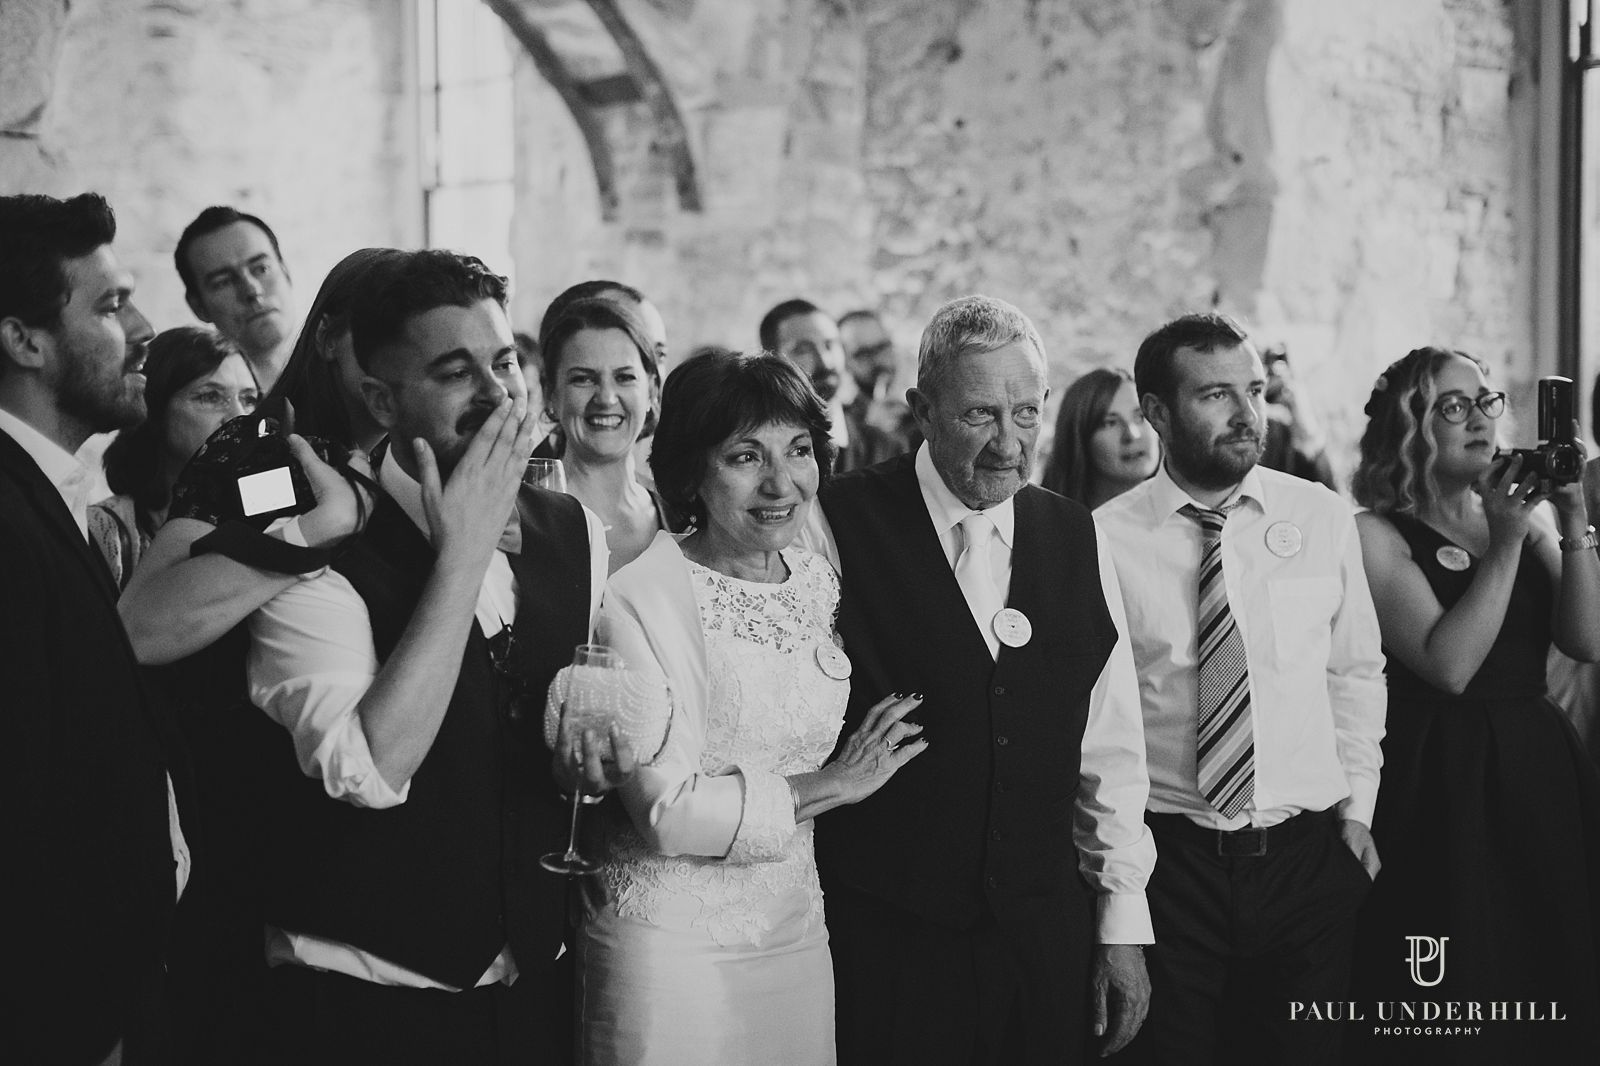 wedding-guests-reactions-documentary-photography